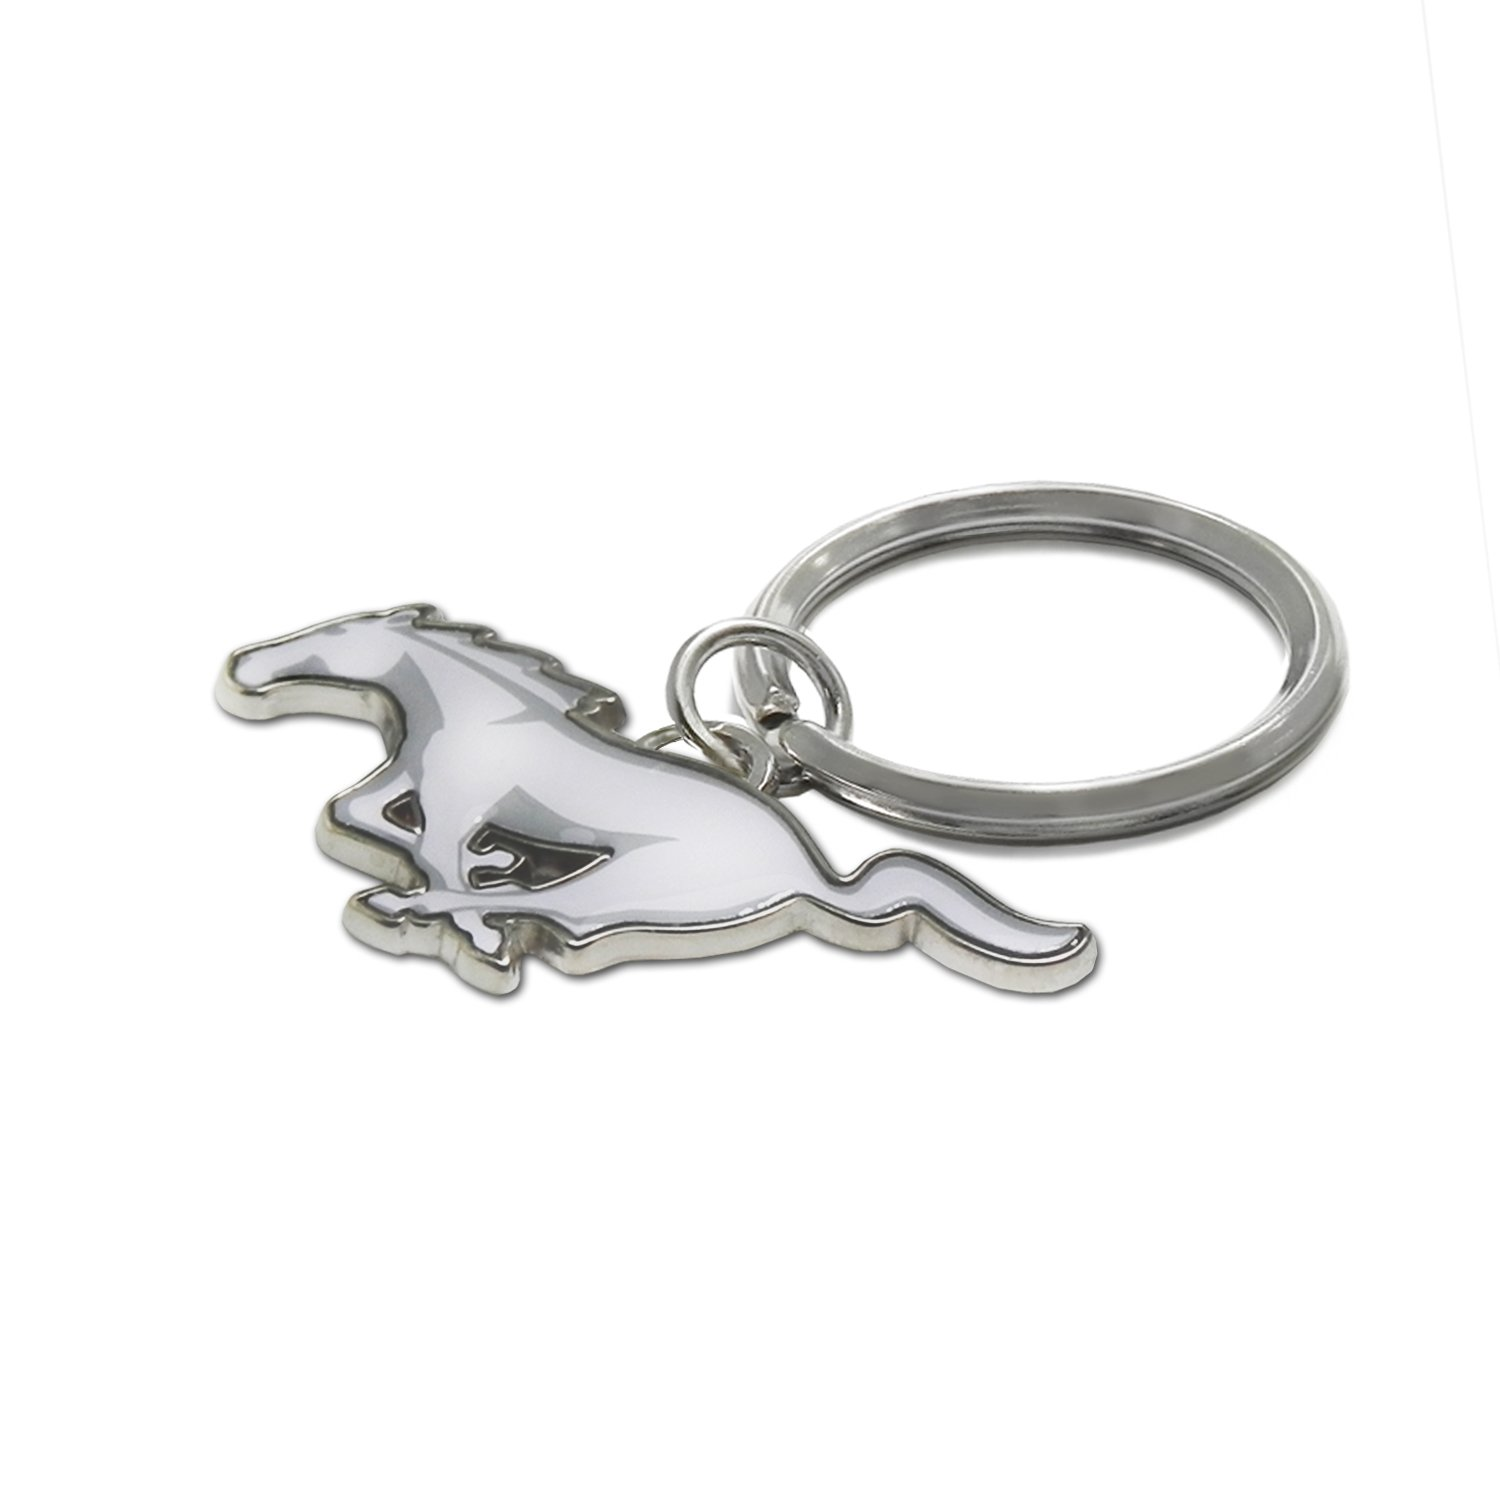 Ford Mustang White Pony Logo Metal Key Chain Keychain by iPick Image for 2000 to 2018 Mustang Key Charm